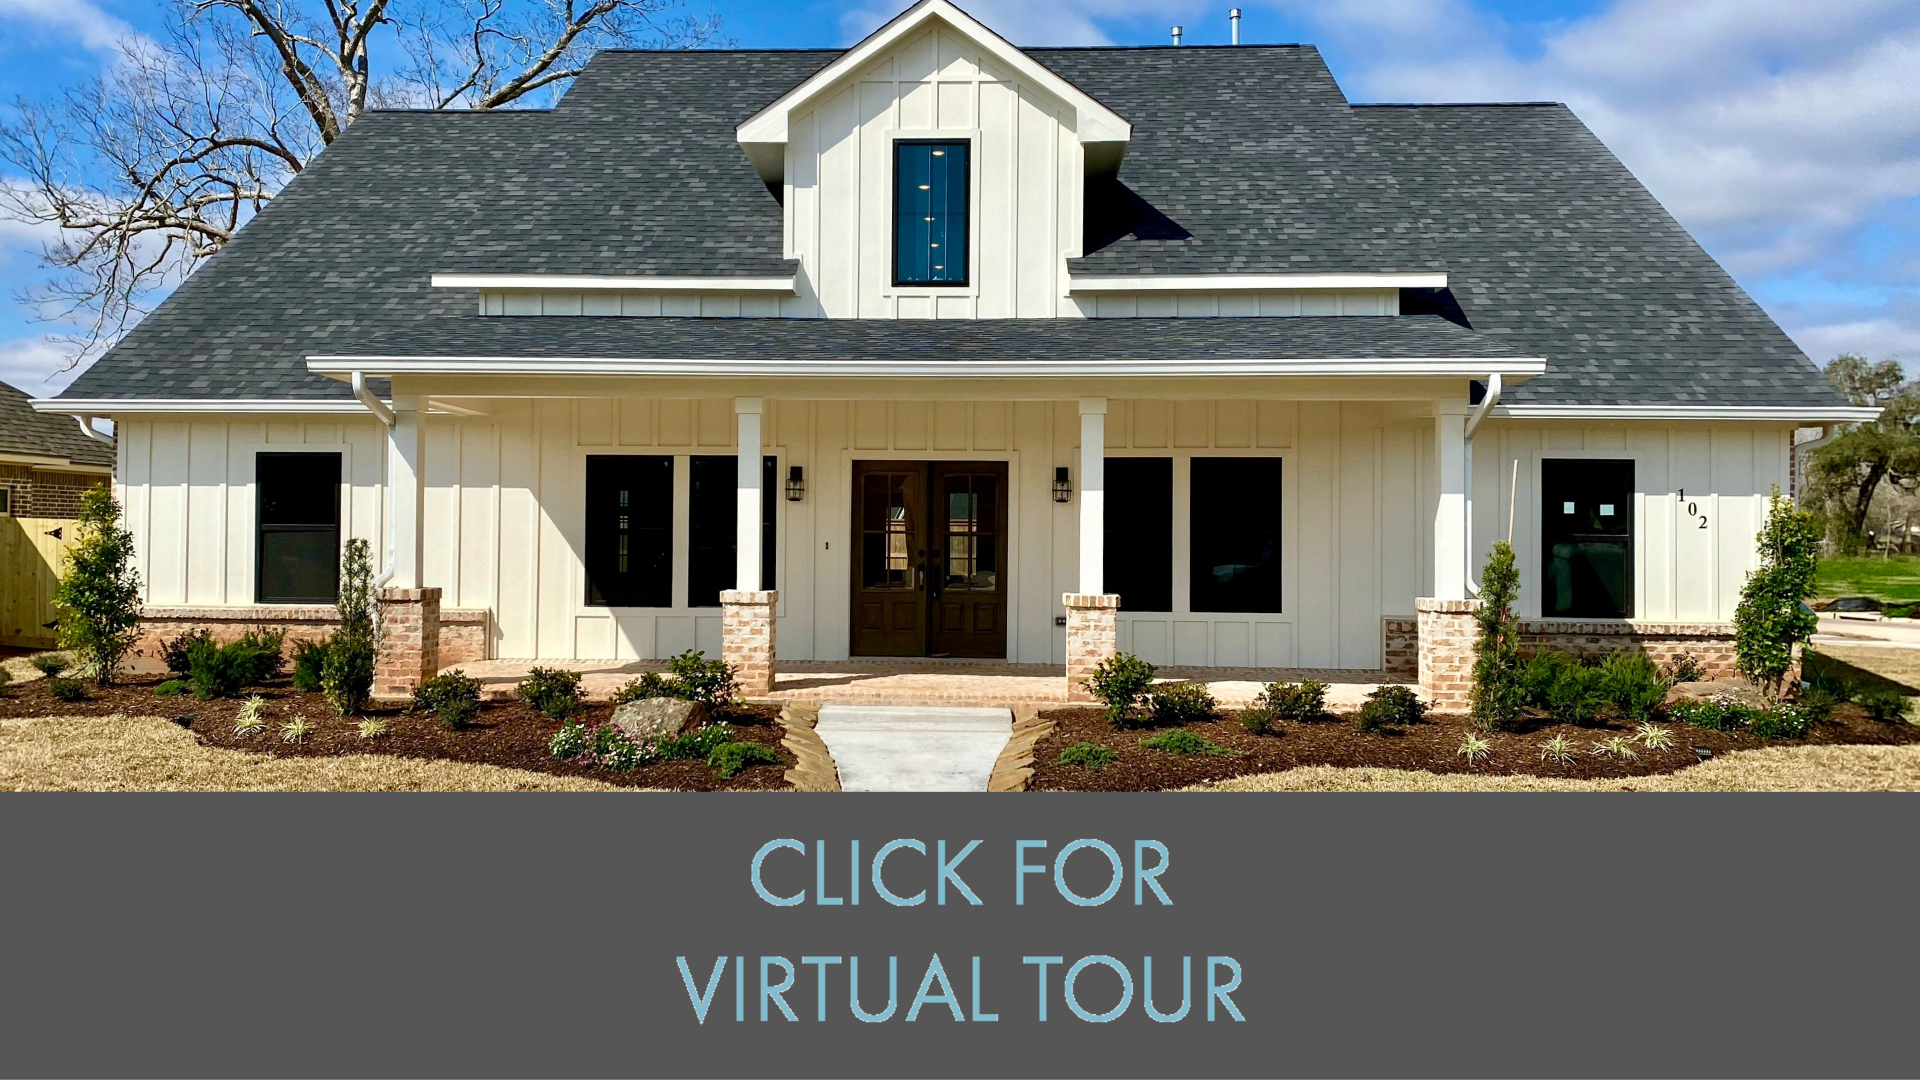 Click to find out more about this custom home for sale!